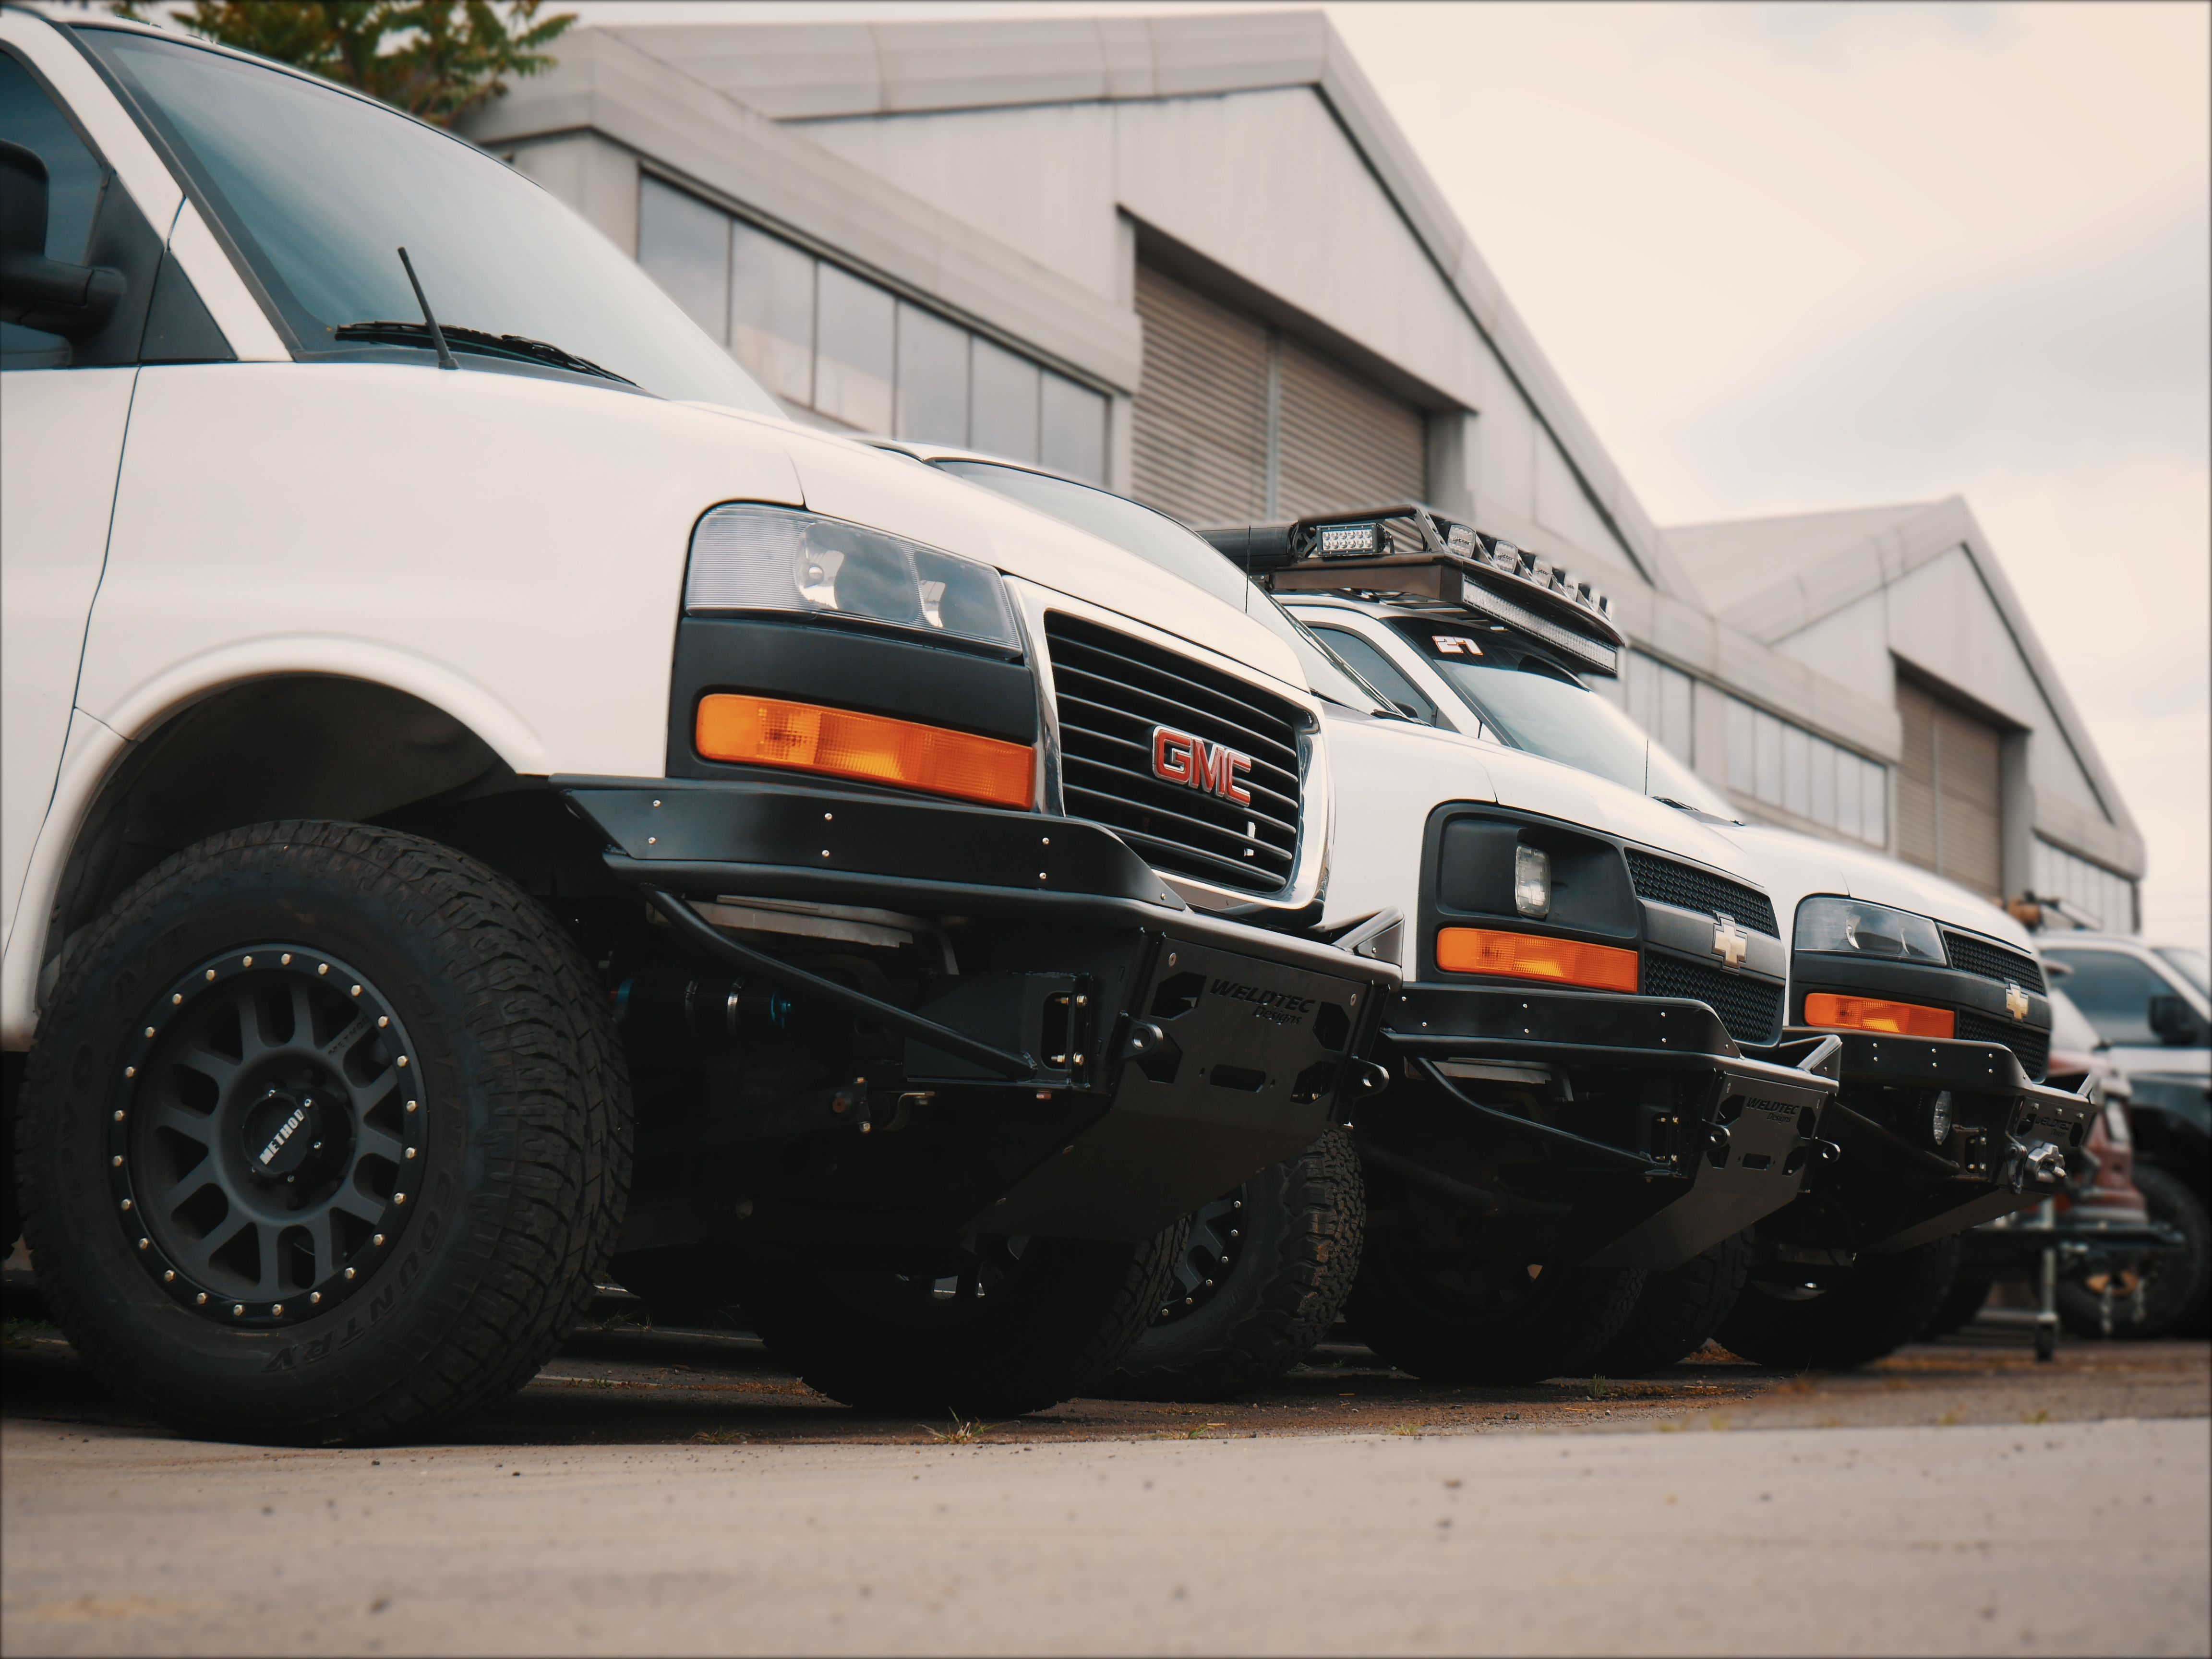 This Is Our Custom Chevy Express Stealth Tube Winch Bumper Lined Up On Some Rad Express Vans Van Vanbumper Cus Chevy Express Winch Bumpers Off Road Bumpers